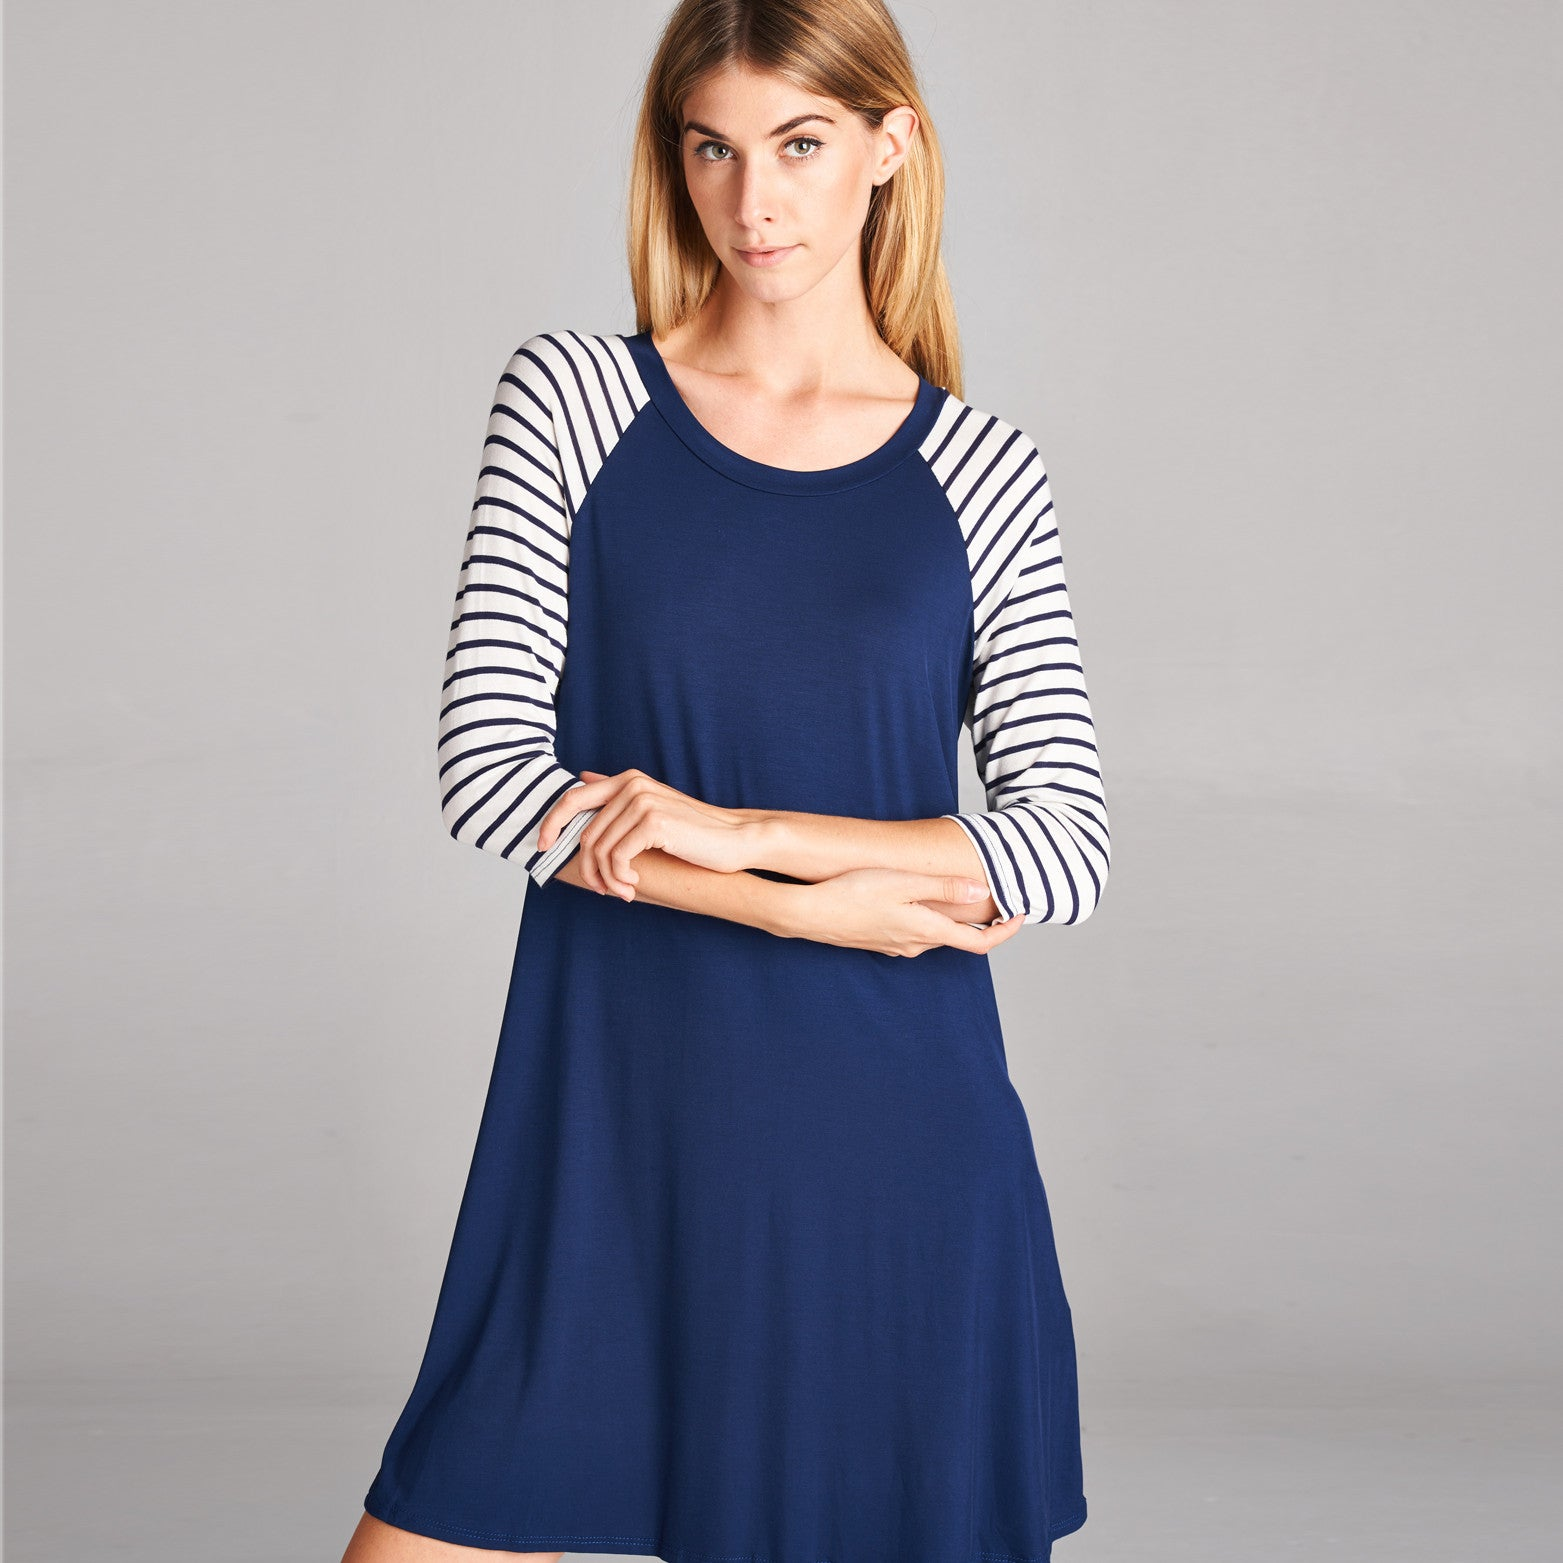 Solid & Striped Sleeve Dress